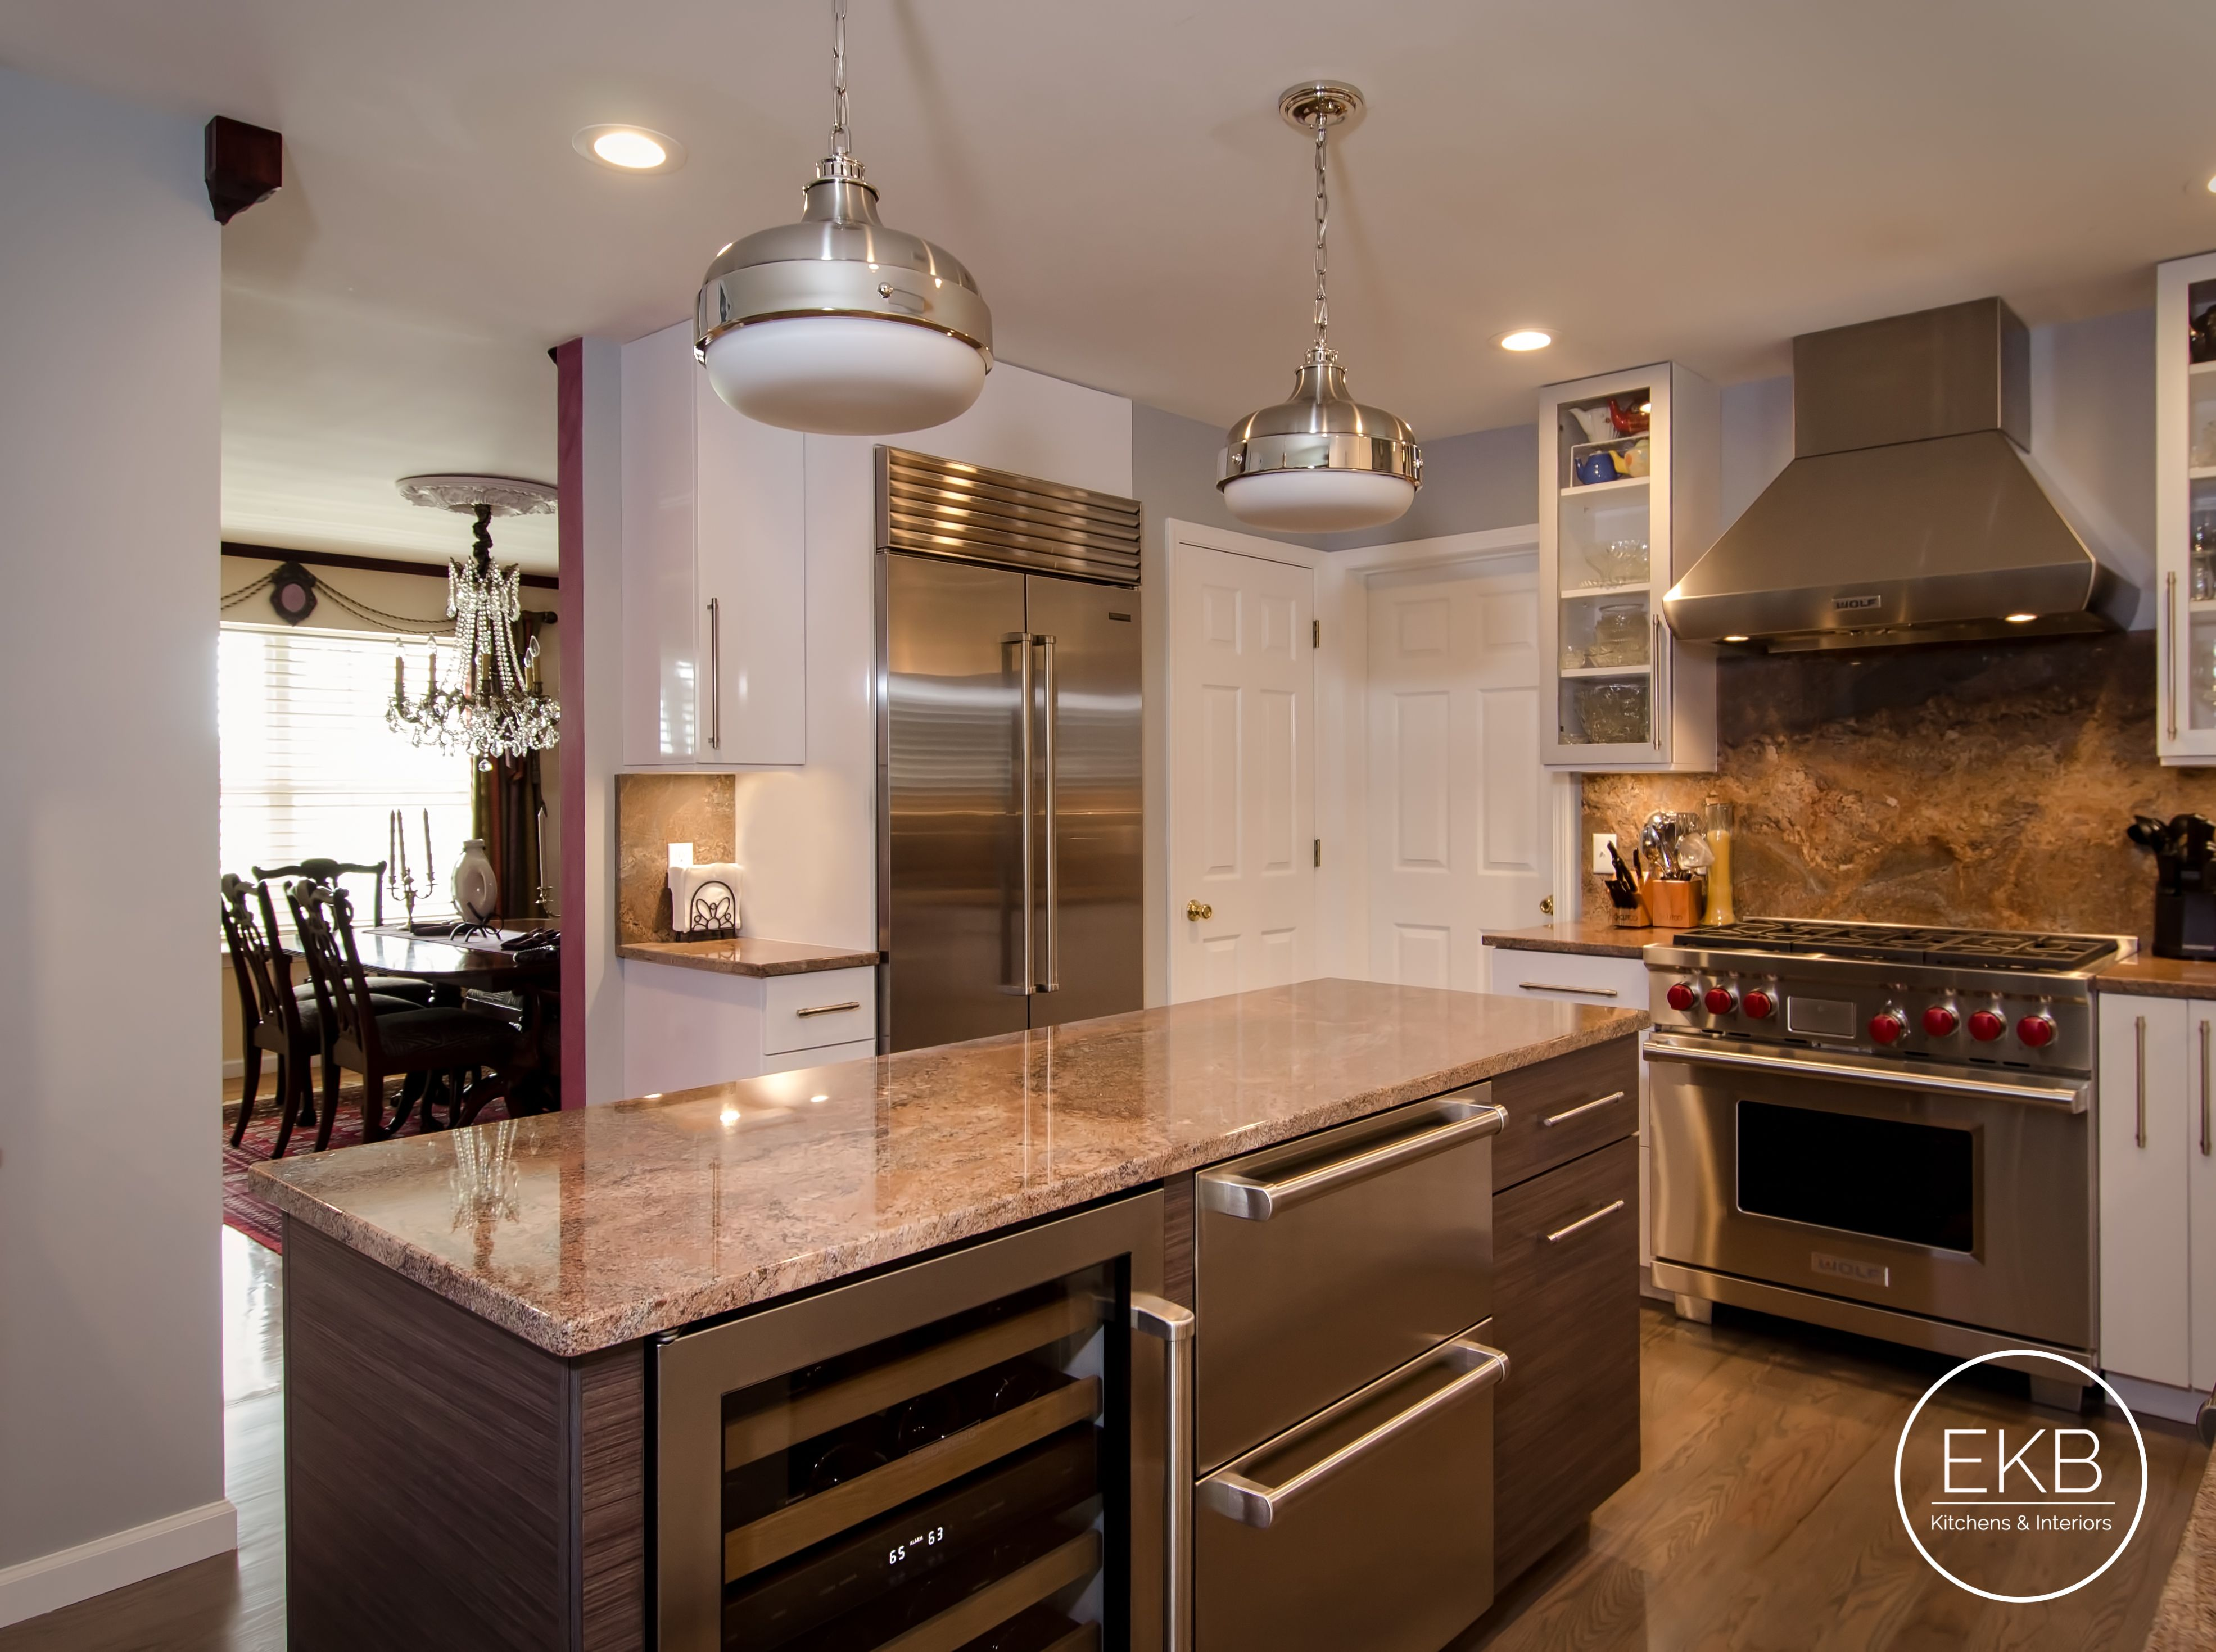 Eclipse Thermally Infused Laminate Cabinets In A Metropolitan Door Style To Give This Kitchen A Ma Kitchen Design Installing Kitchen Cabinets Kitchen Remodel